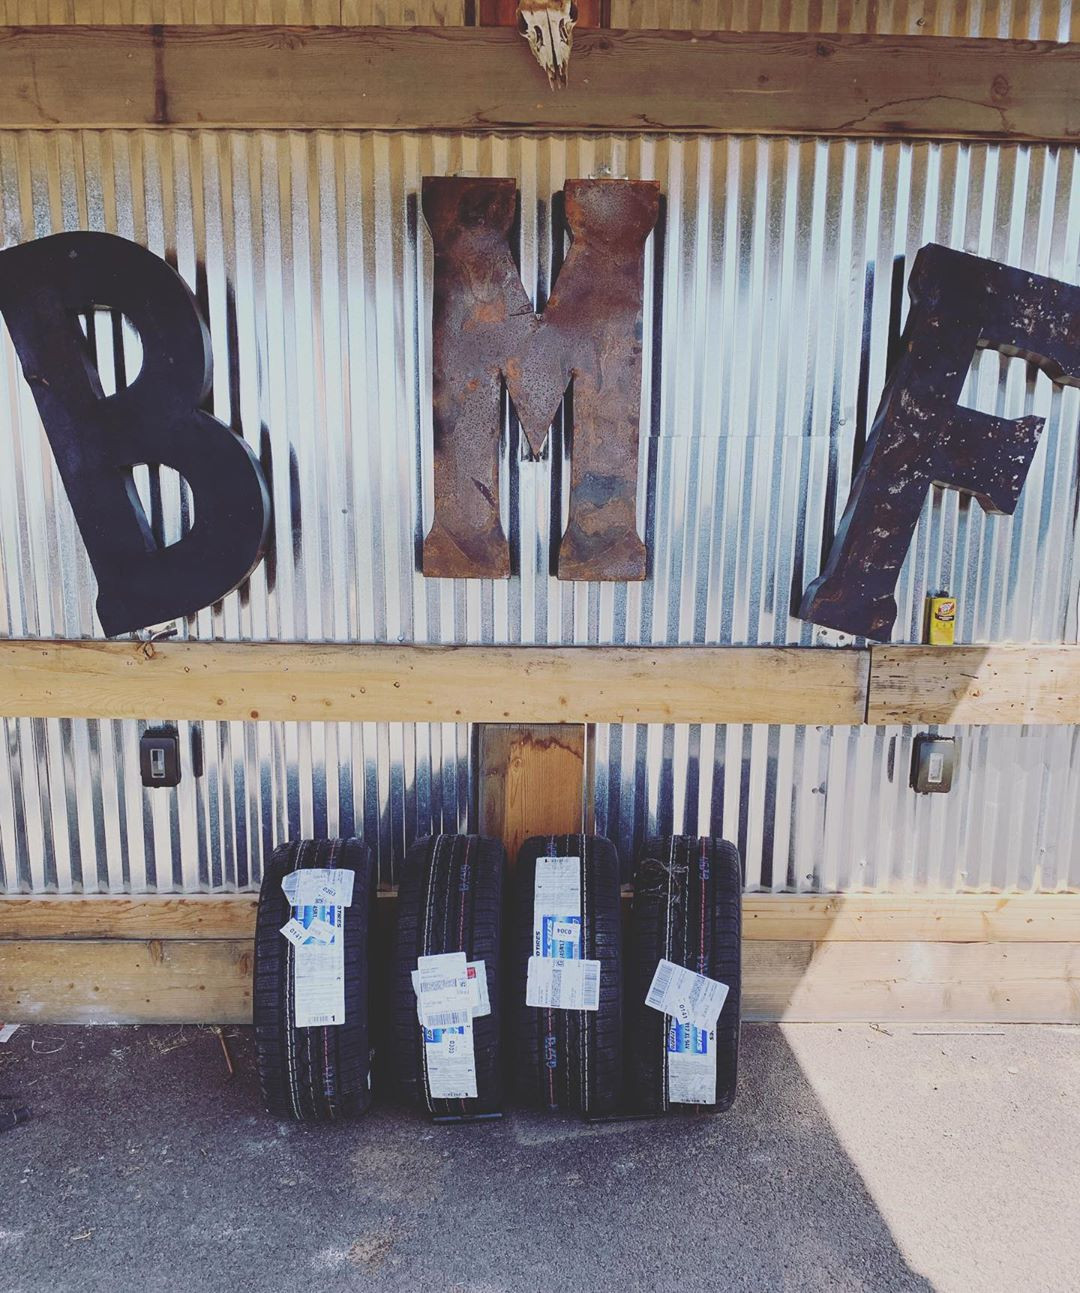 The BMF sign at the ranch which Donald 'Cowboy' Cerrone has built himself